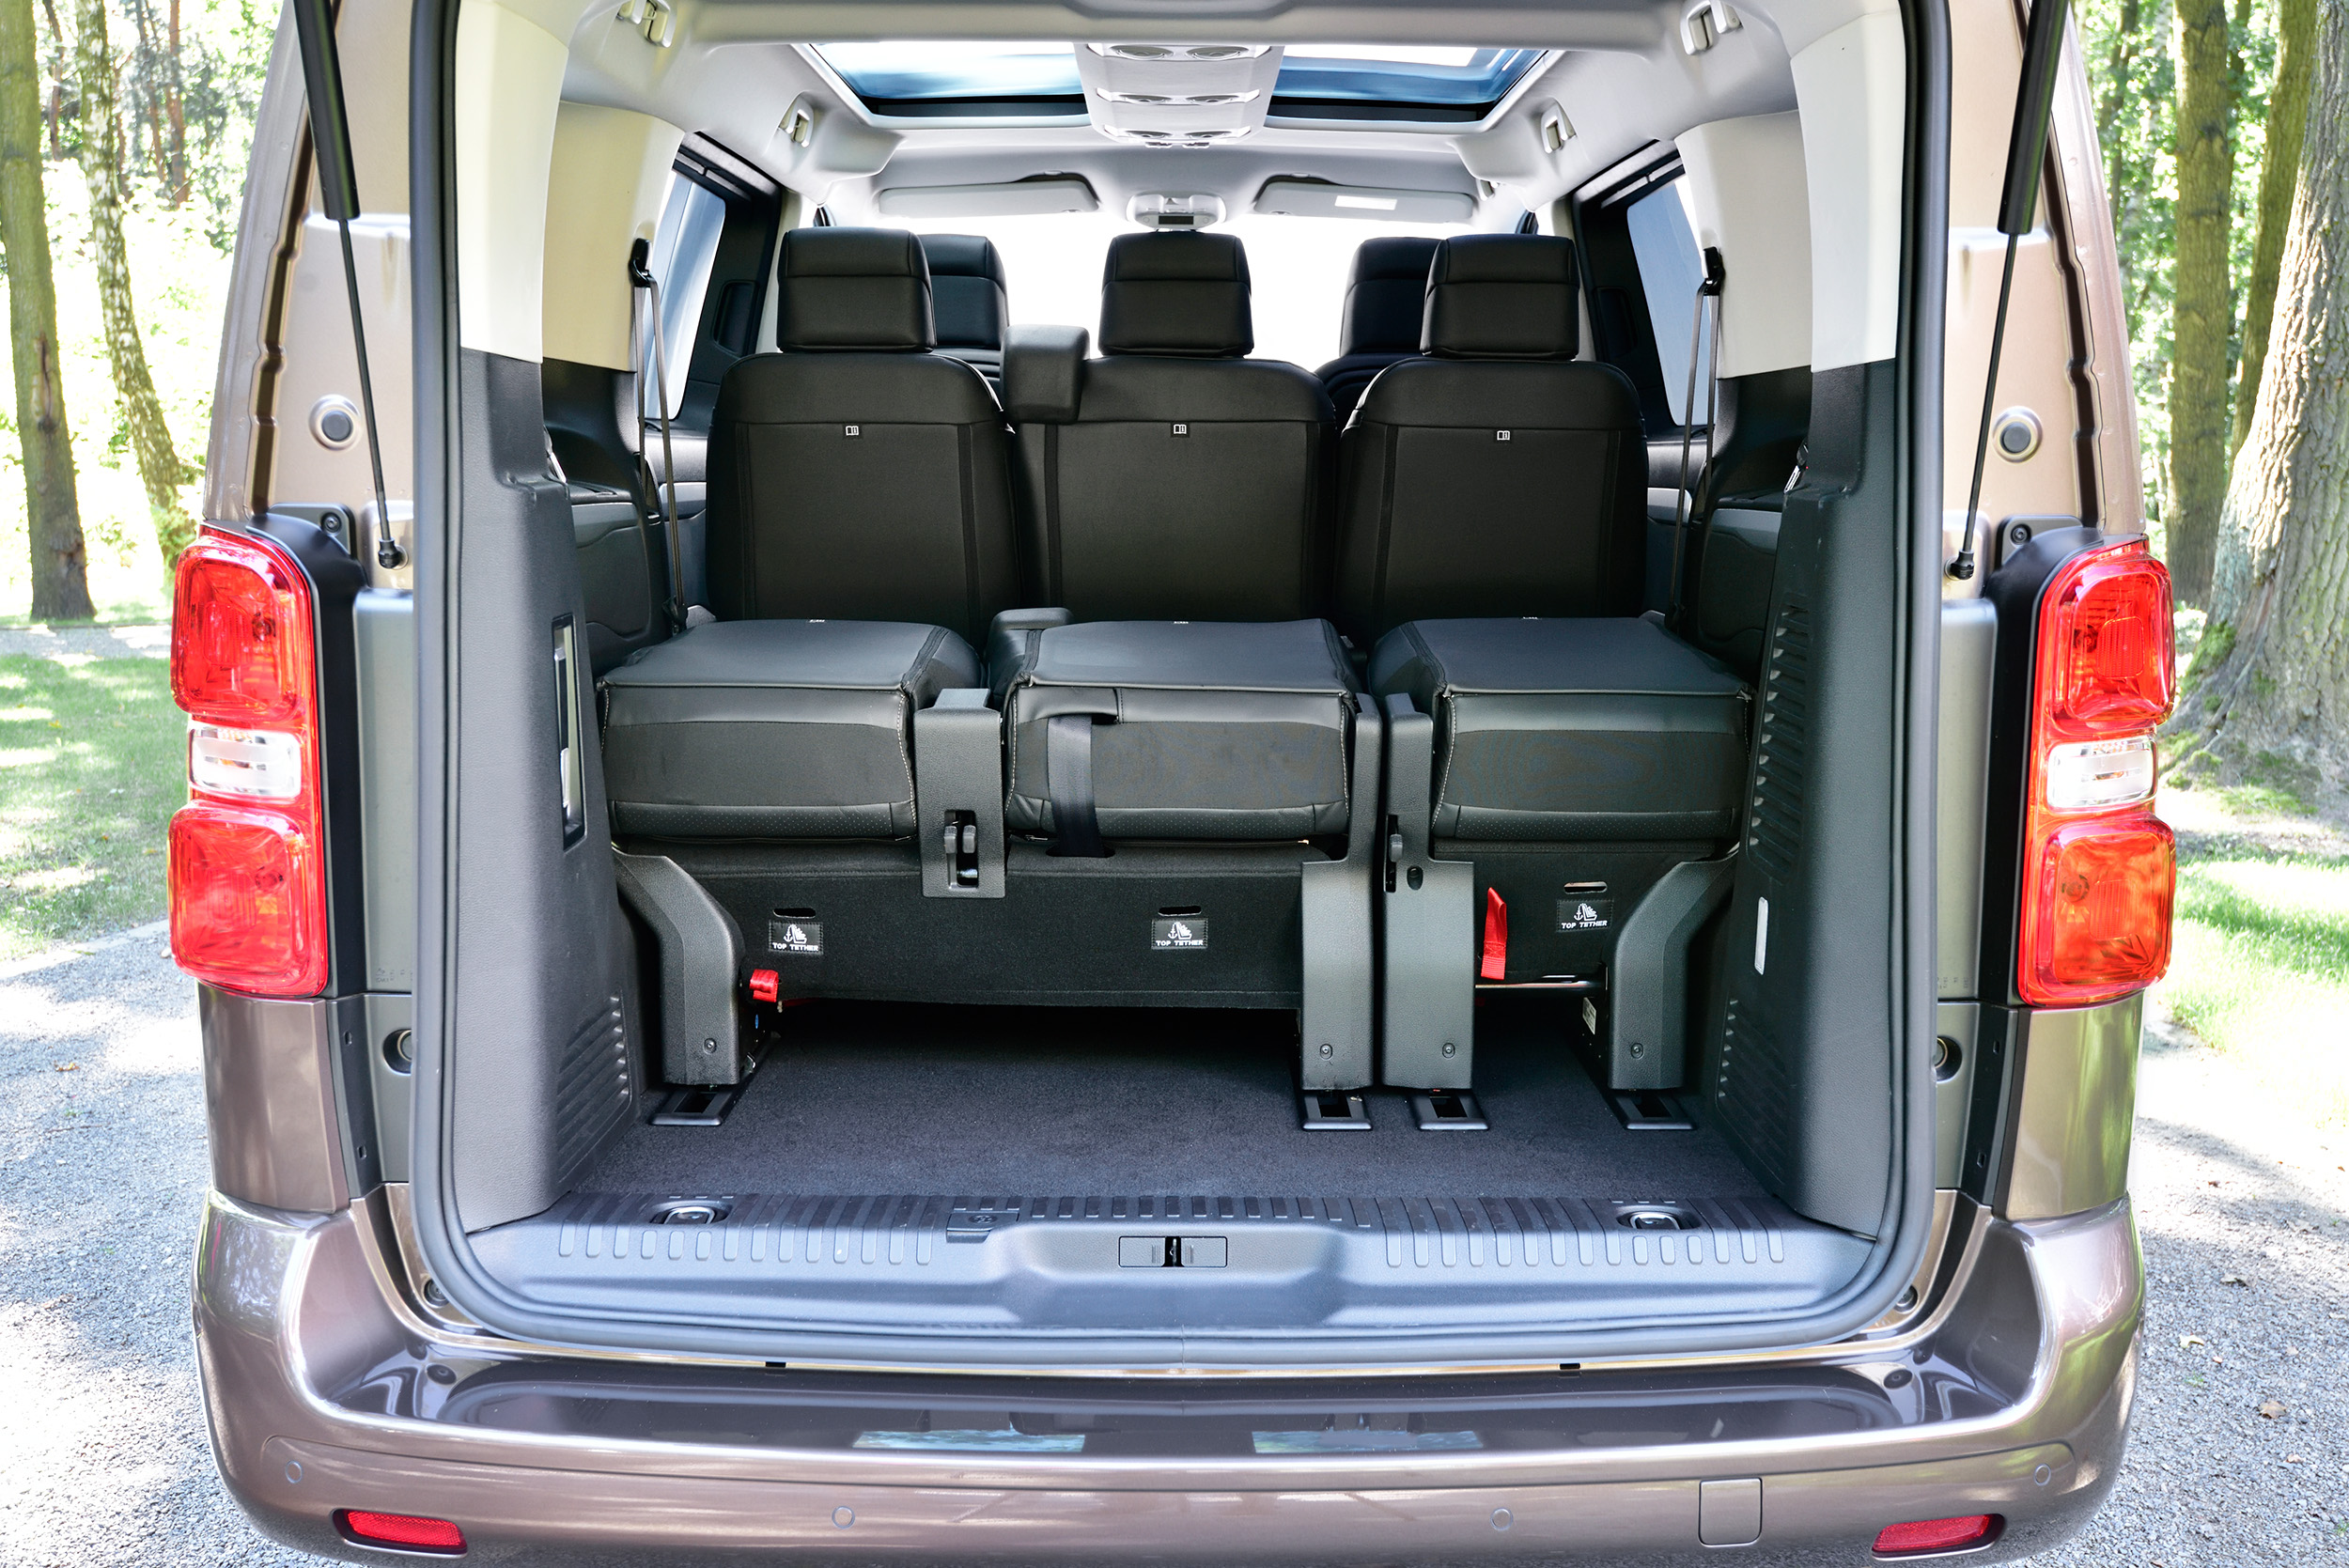 essai toyota proace verso 150 ch au bonheur des flottes vip link2fleet for a smarter mobility. Black Bedroom Furniture Sets. Home Design Ideas